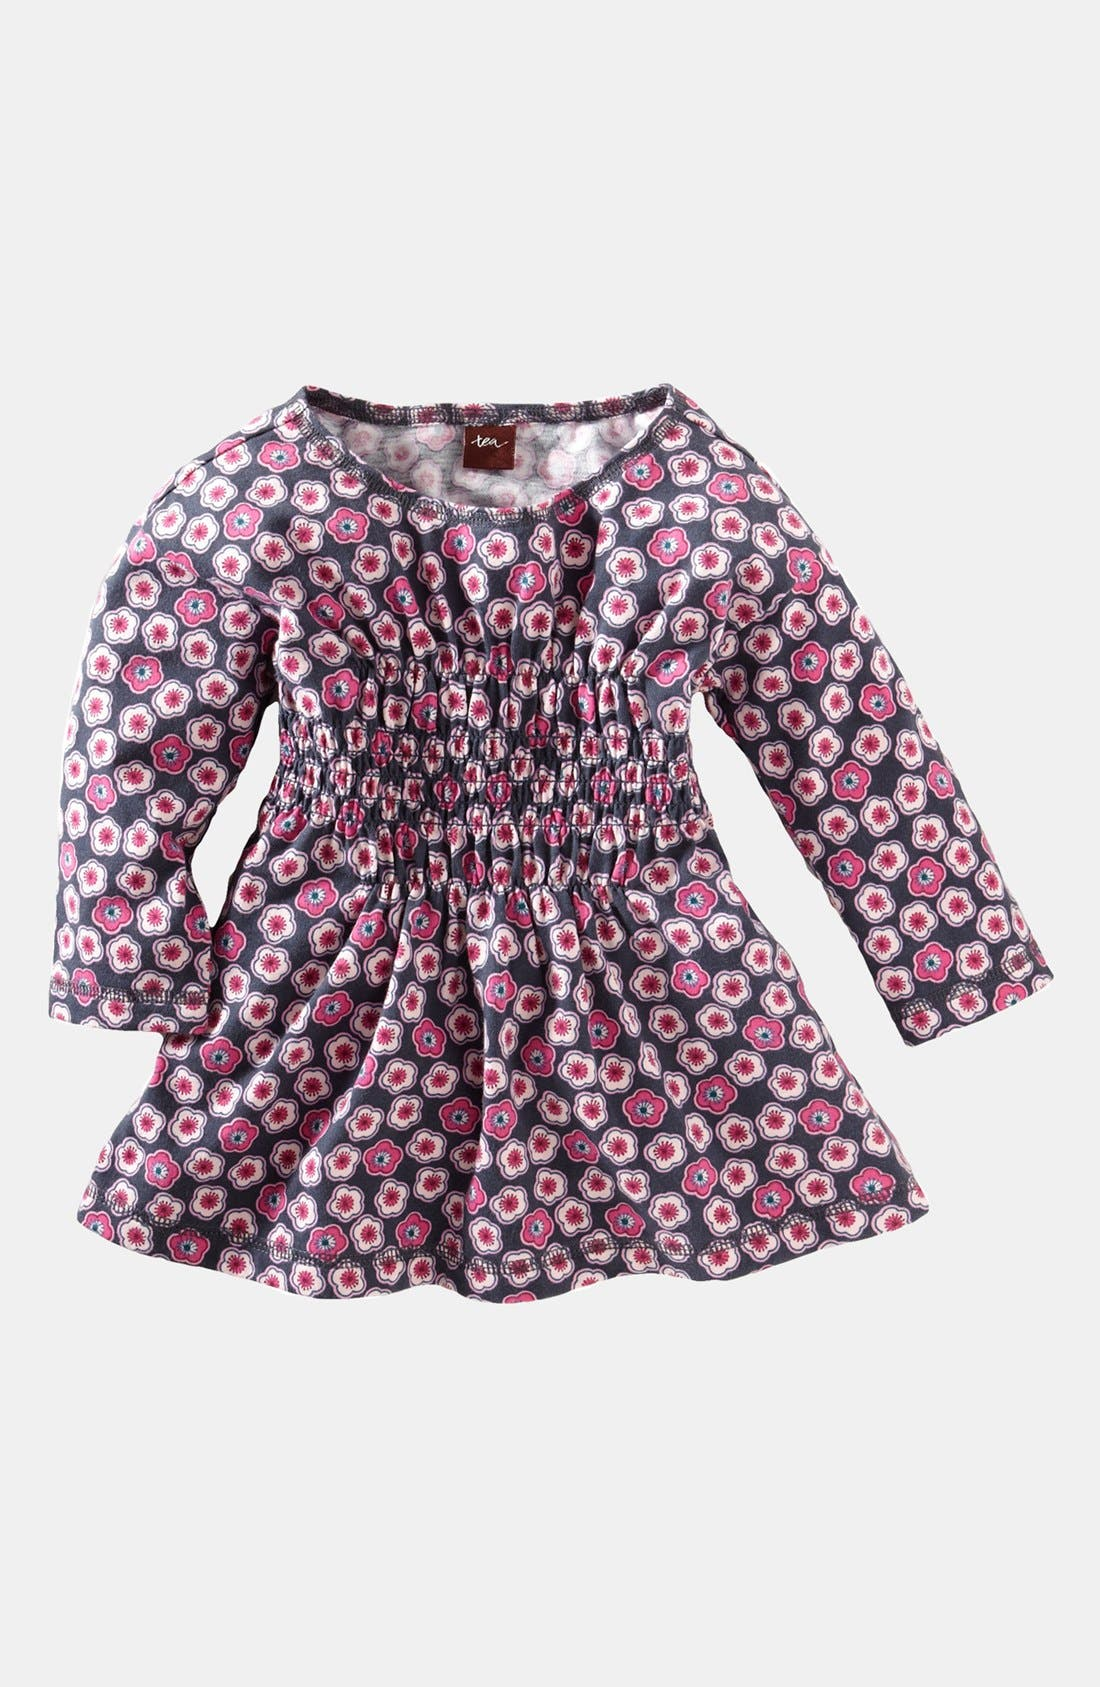 Alternate Image 1 Selected - Tea Collection 'Cherry Blossom' Smocked Tunic (Little Girls & Big Girls)